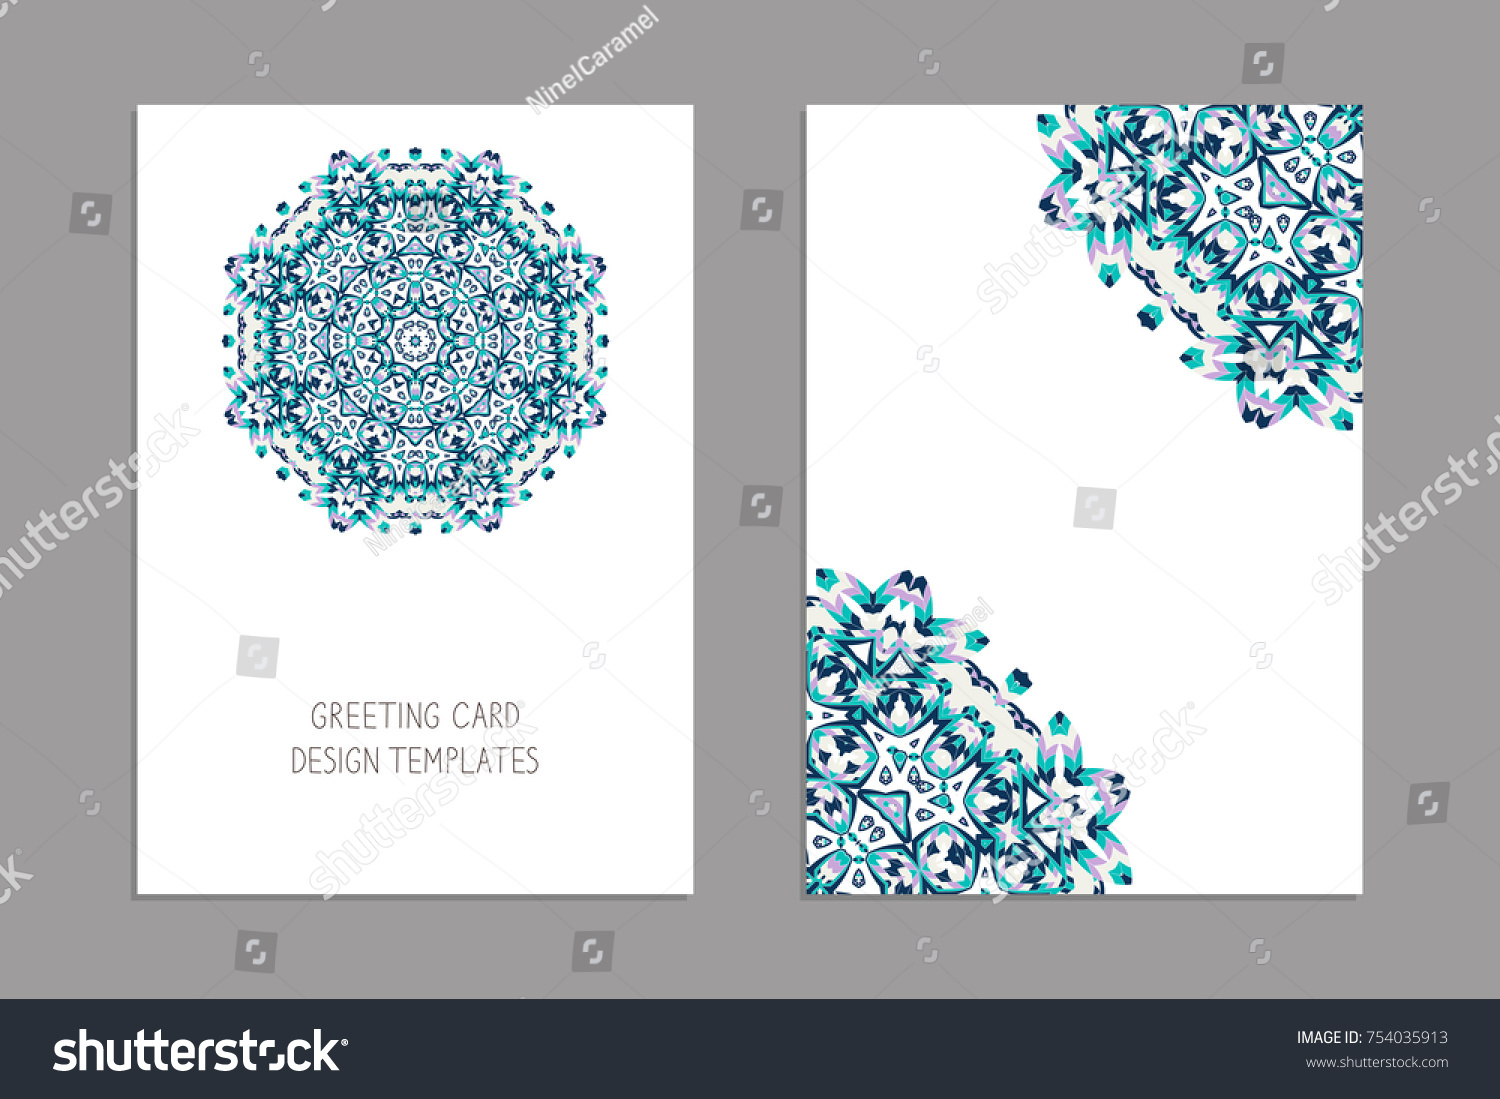 Templates Greeting Business Cards Brochures Christmas Stock Vector